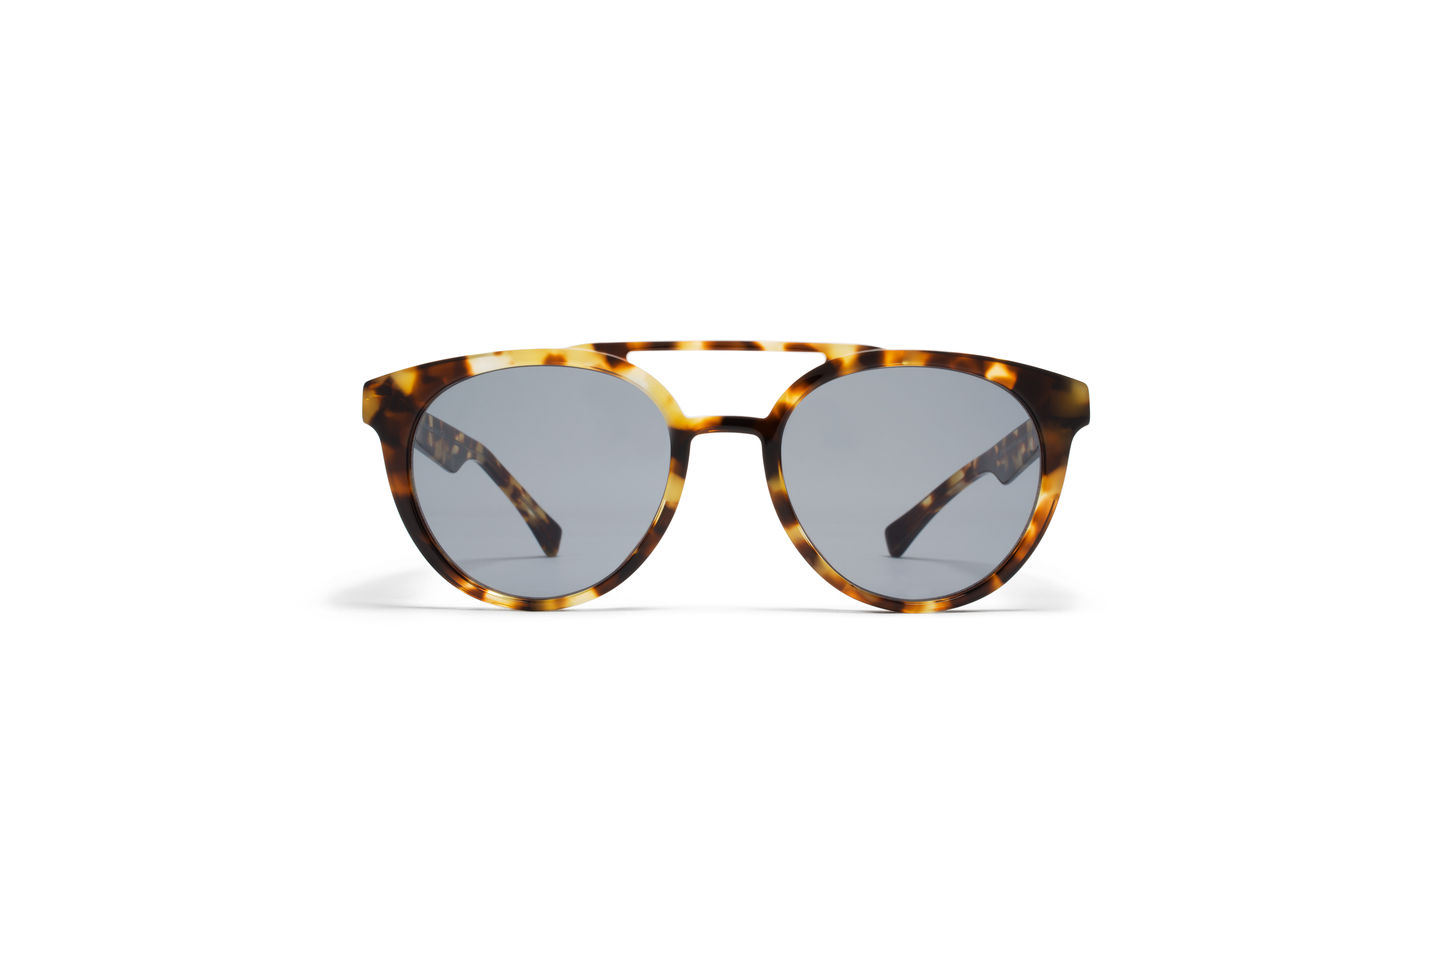 MYKITA Acetatsonnenbrille GILES in MYKITA JOURNALs Tropical Edit